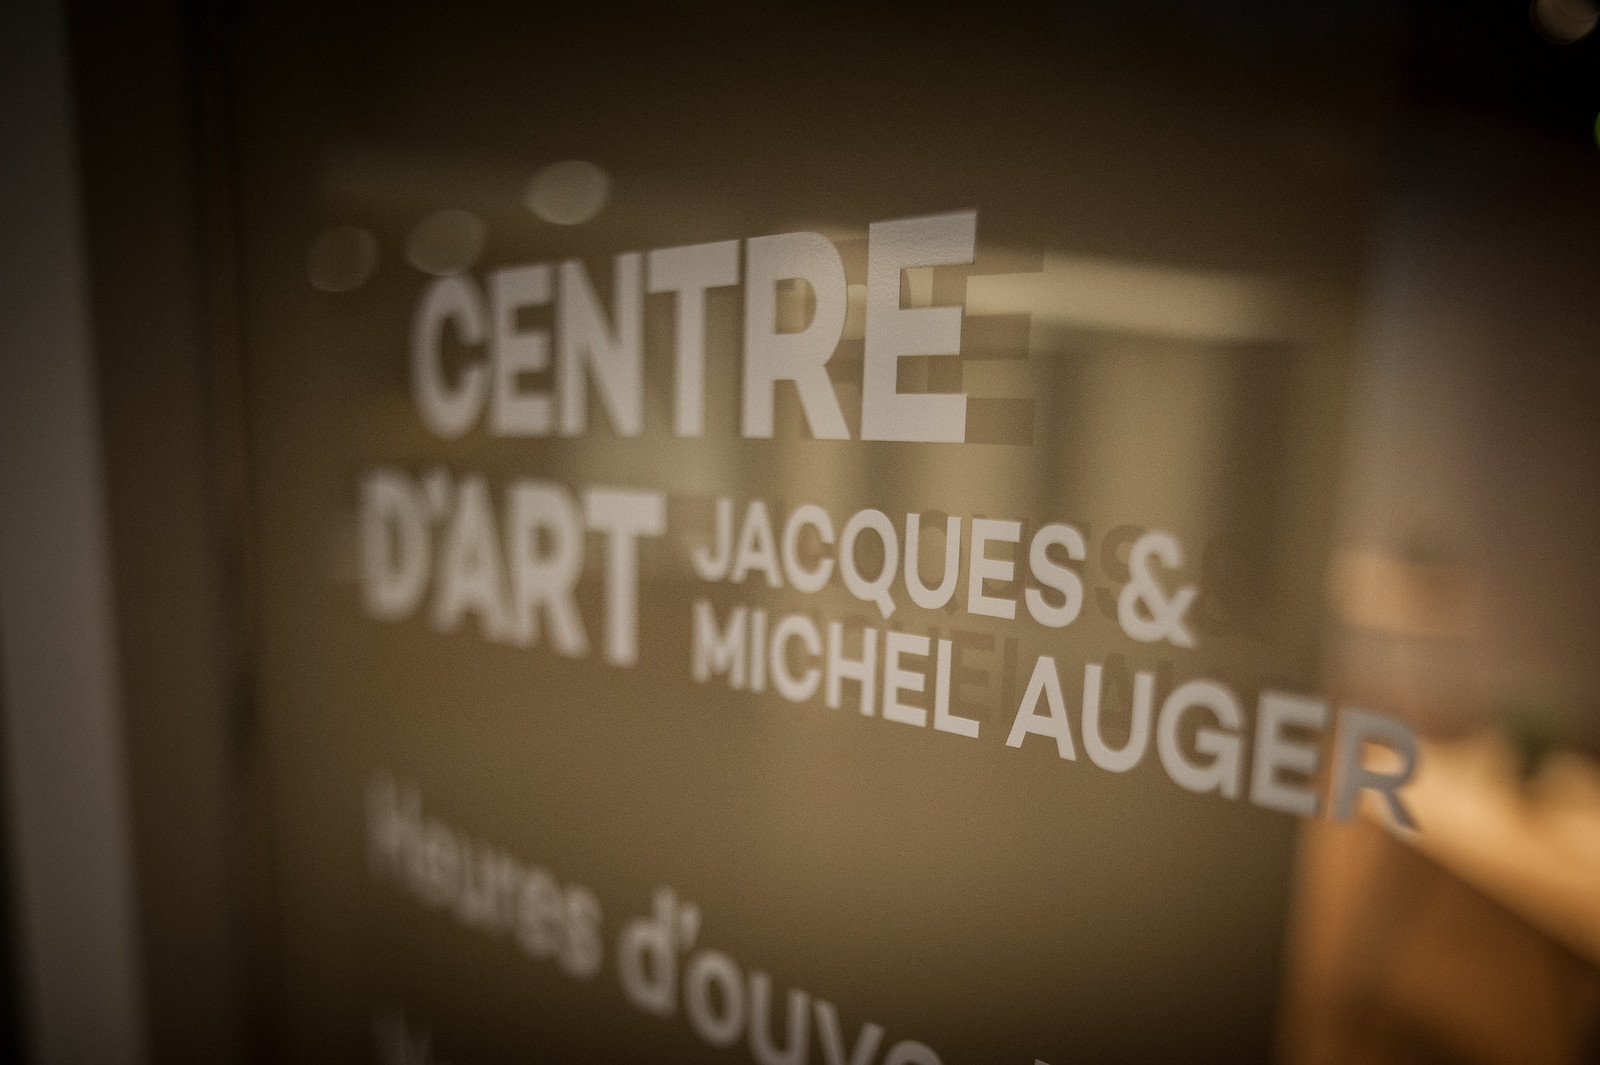 Centre d'art Jacques-et-Michel-Auger